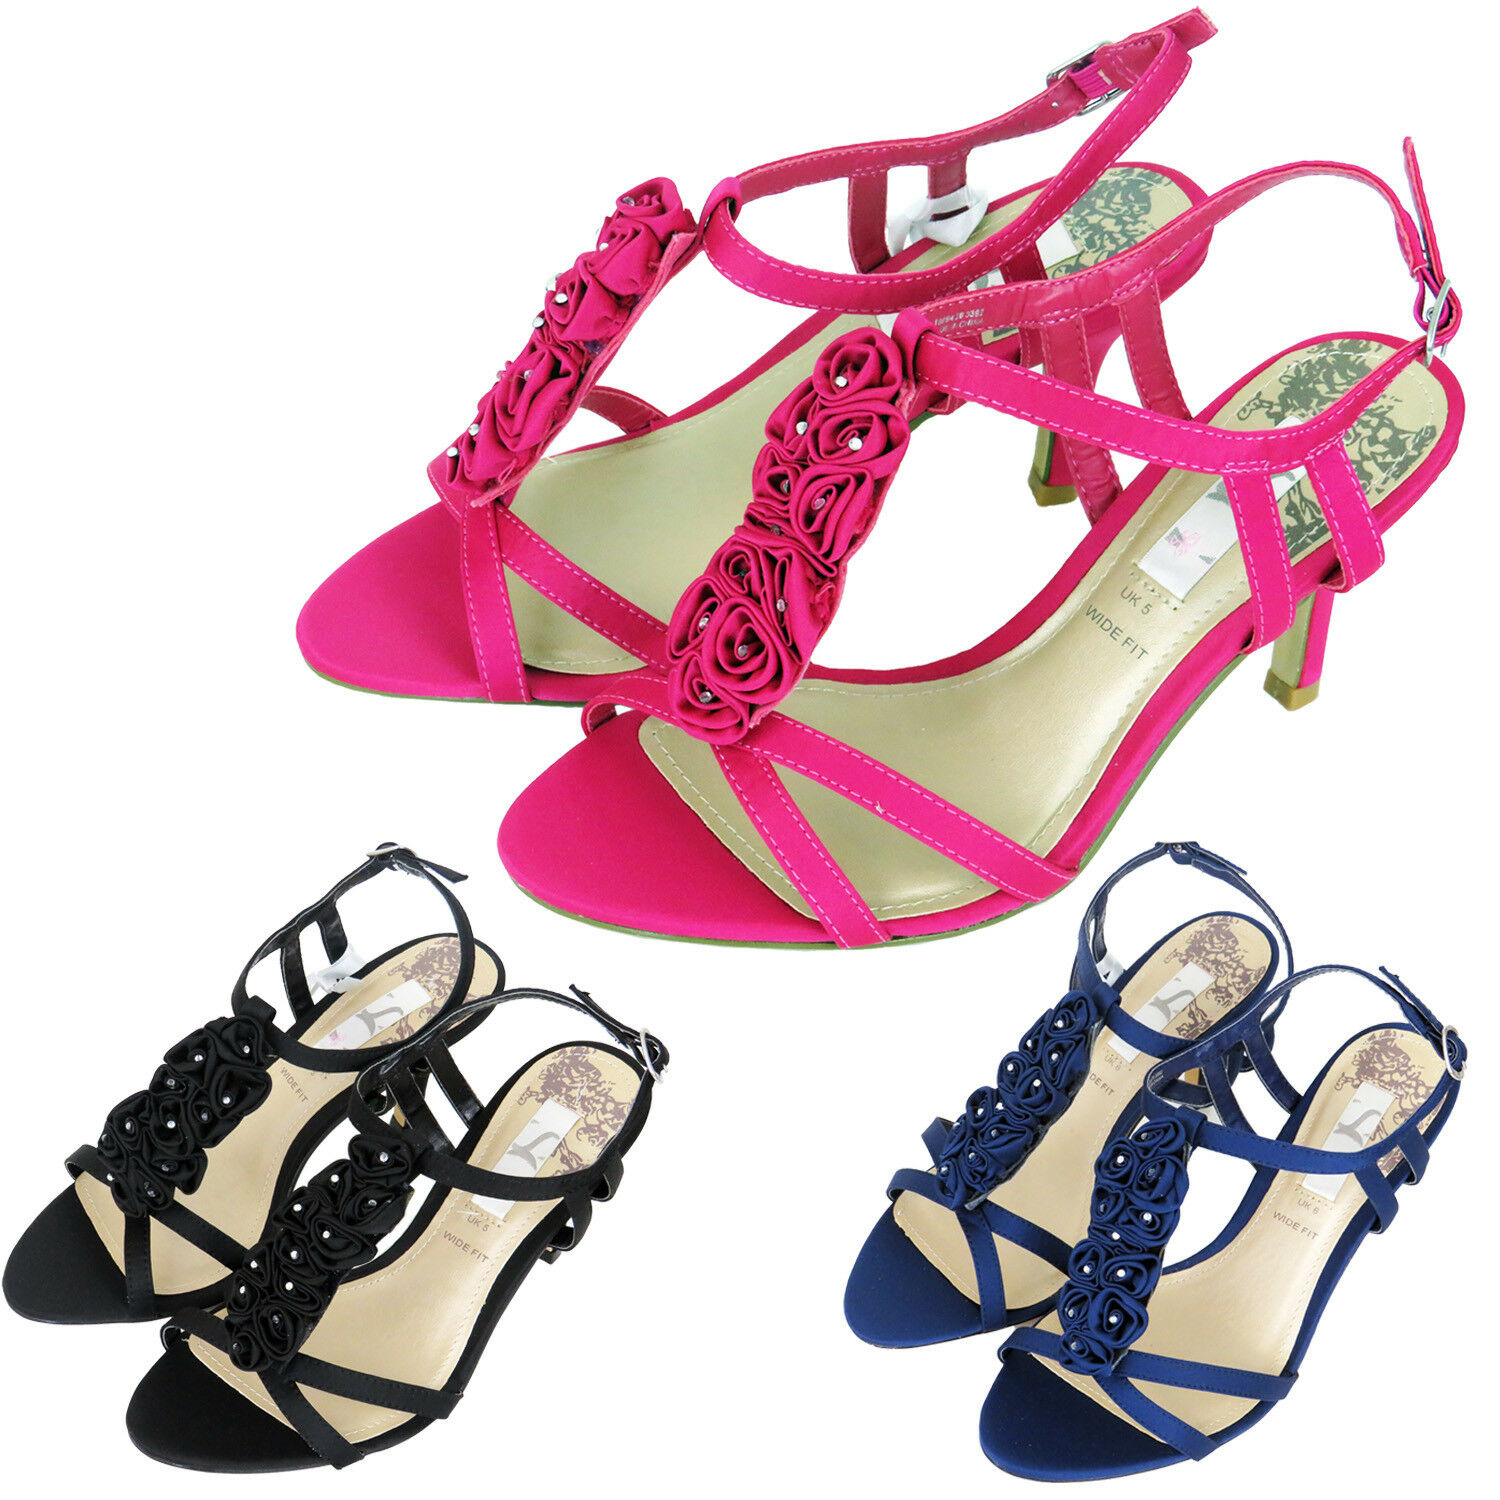 NEW BAR WOMENS SATIN DIAMANTE T BAR NEW PROM PARTY WEDDING BRIDAL MID HEEL SANDALS 4 - 7 a9063d